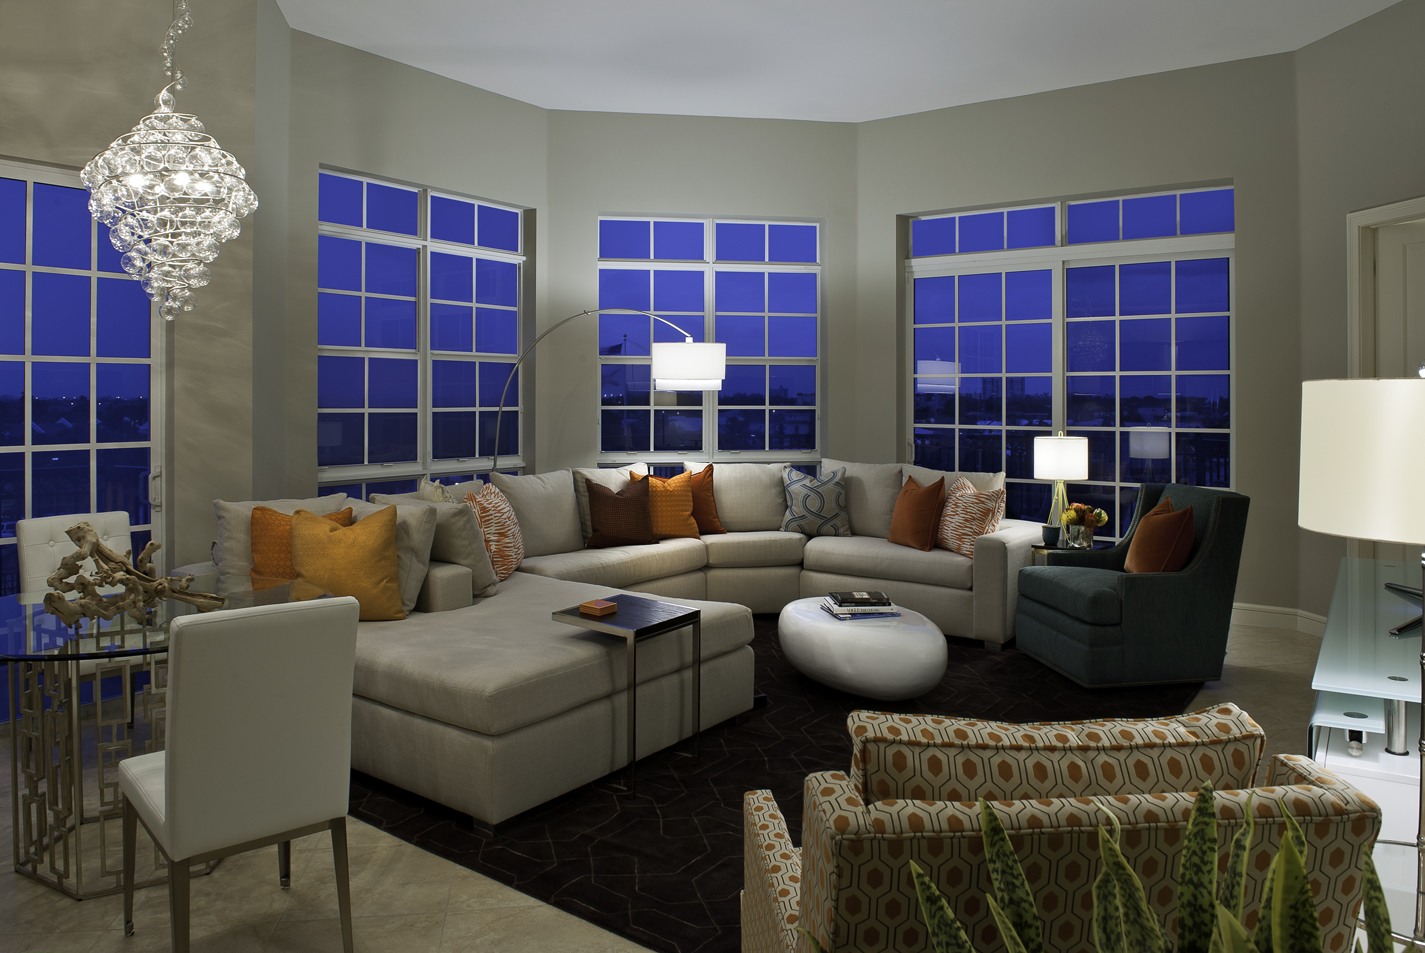 miami condo living room, custom sectional couch with custom pillows, splashes of color